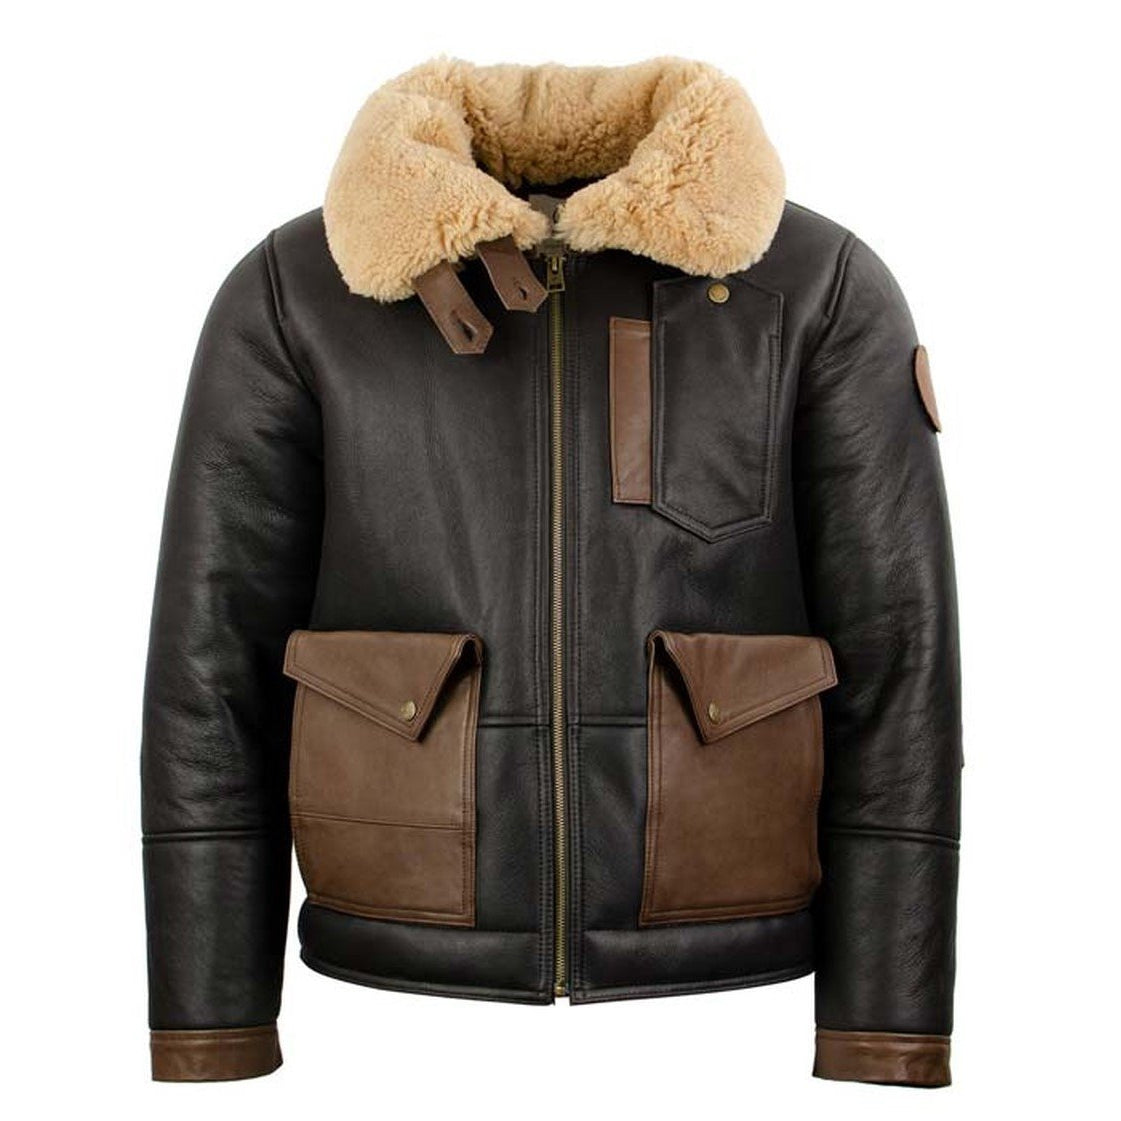 Shearling Bomber Geniune Leather Jacket for Men - bomber jacket - Leather Jacket